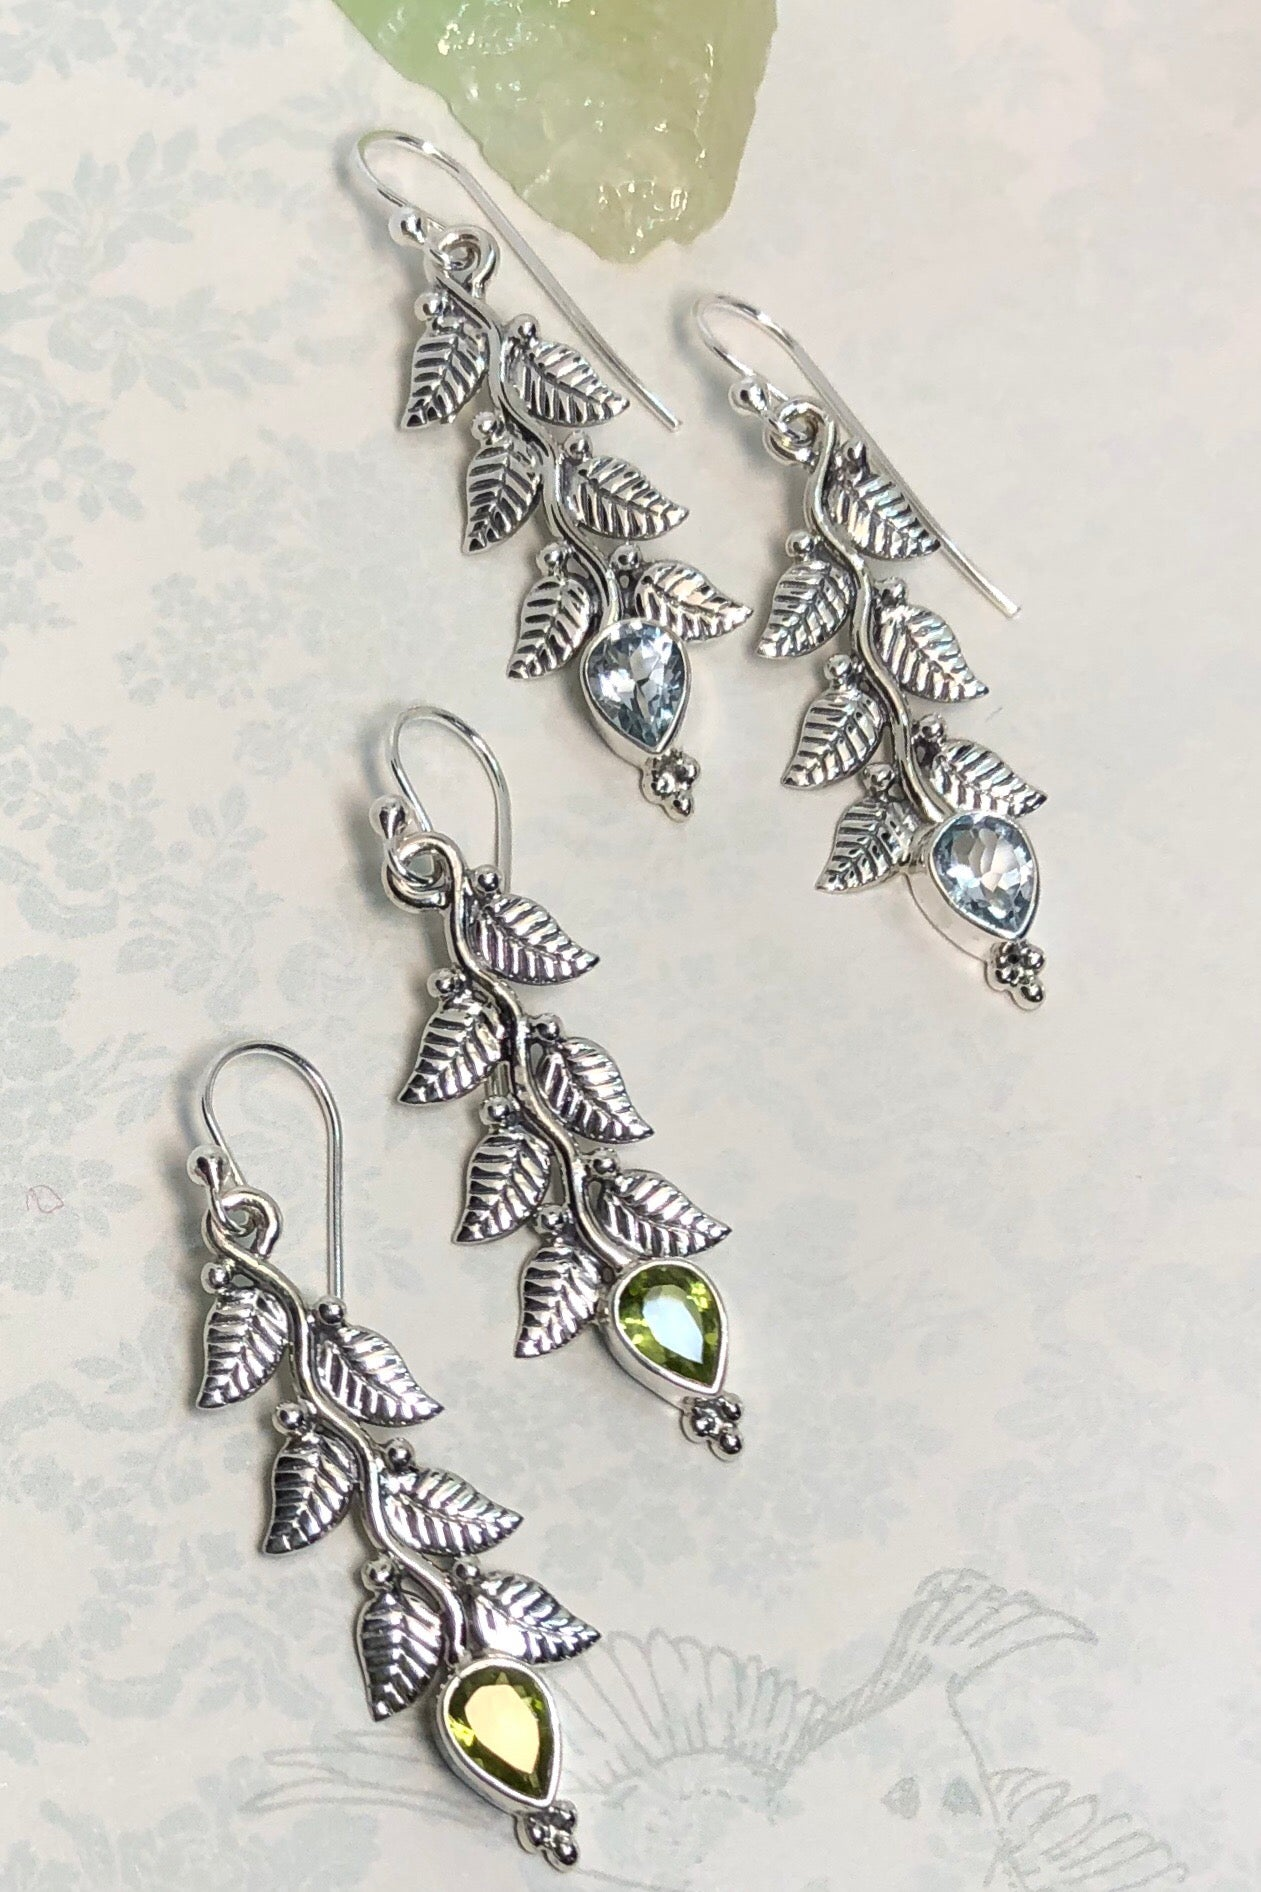 Modern nature design earrings, The Oracle Earrings Vine Gems in Blue Topaz, featuring hanging vine leaves that end with a pretty bright green stone.